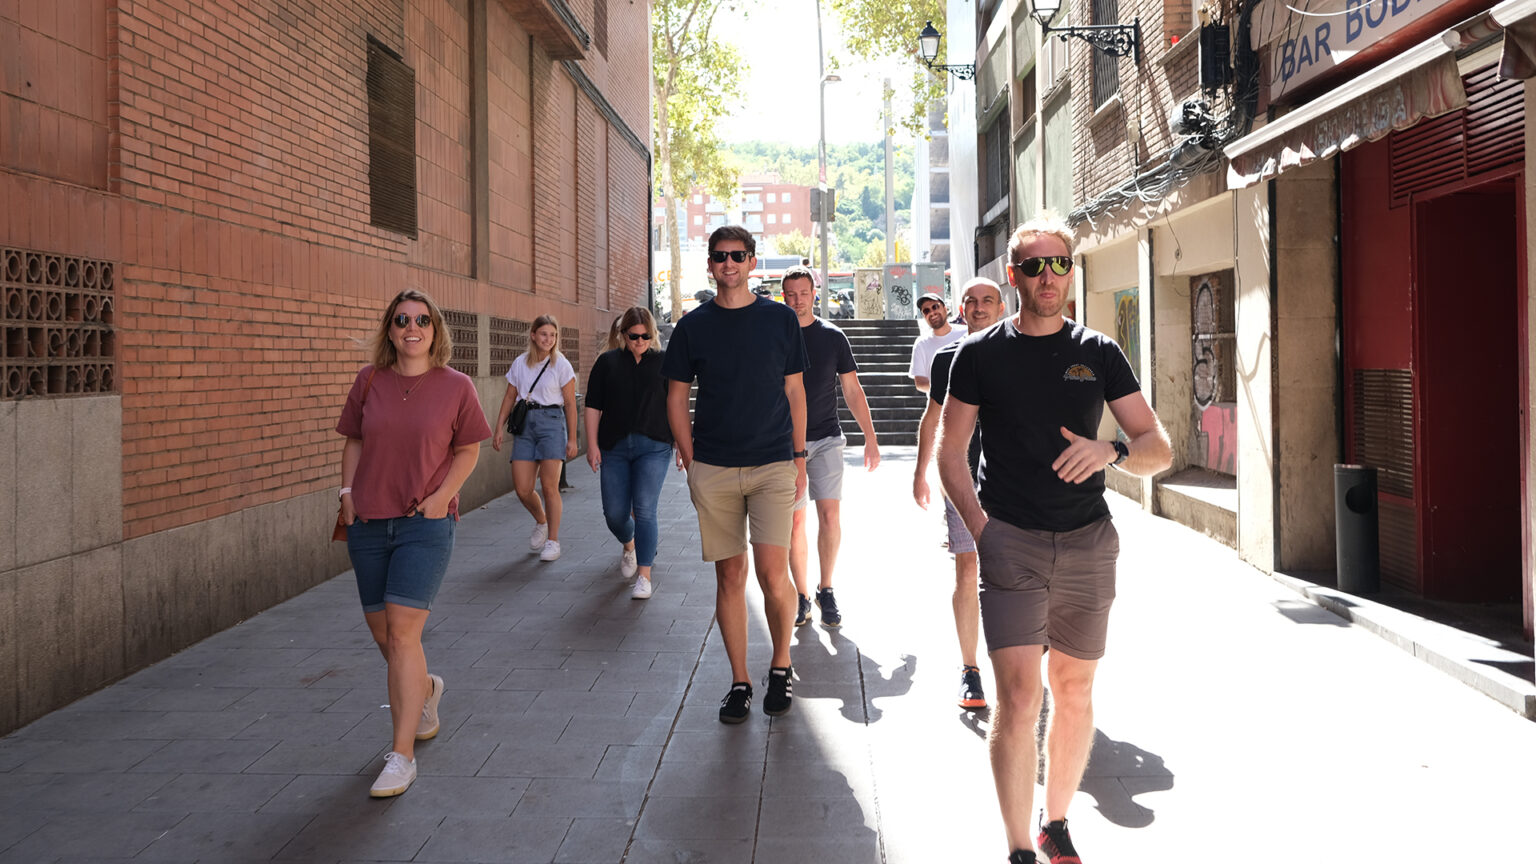 The Canopy Studio team walking down a street in Barcelona